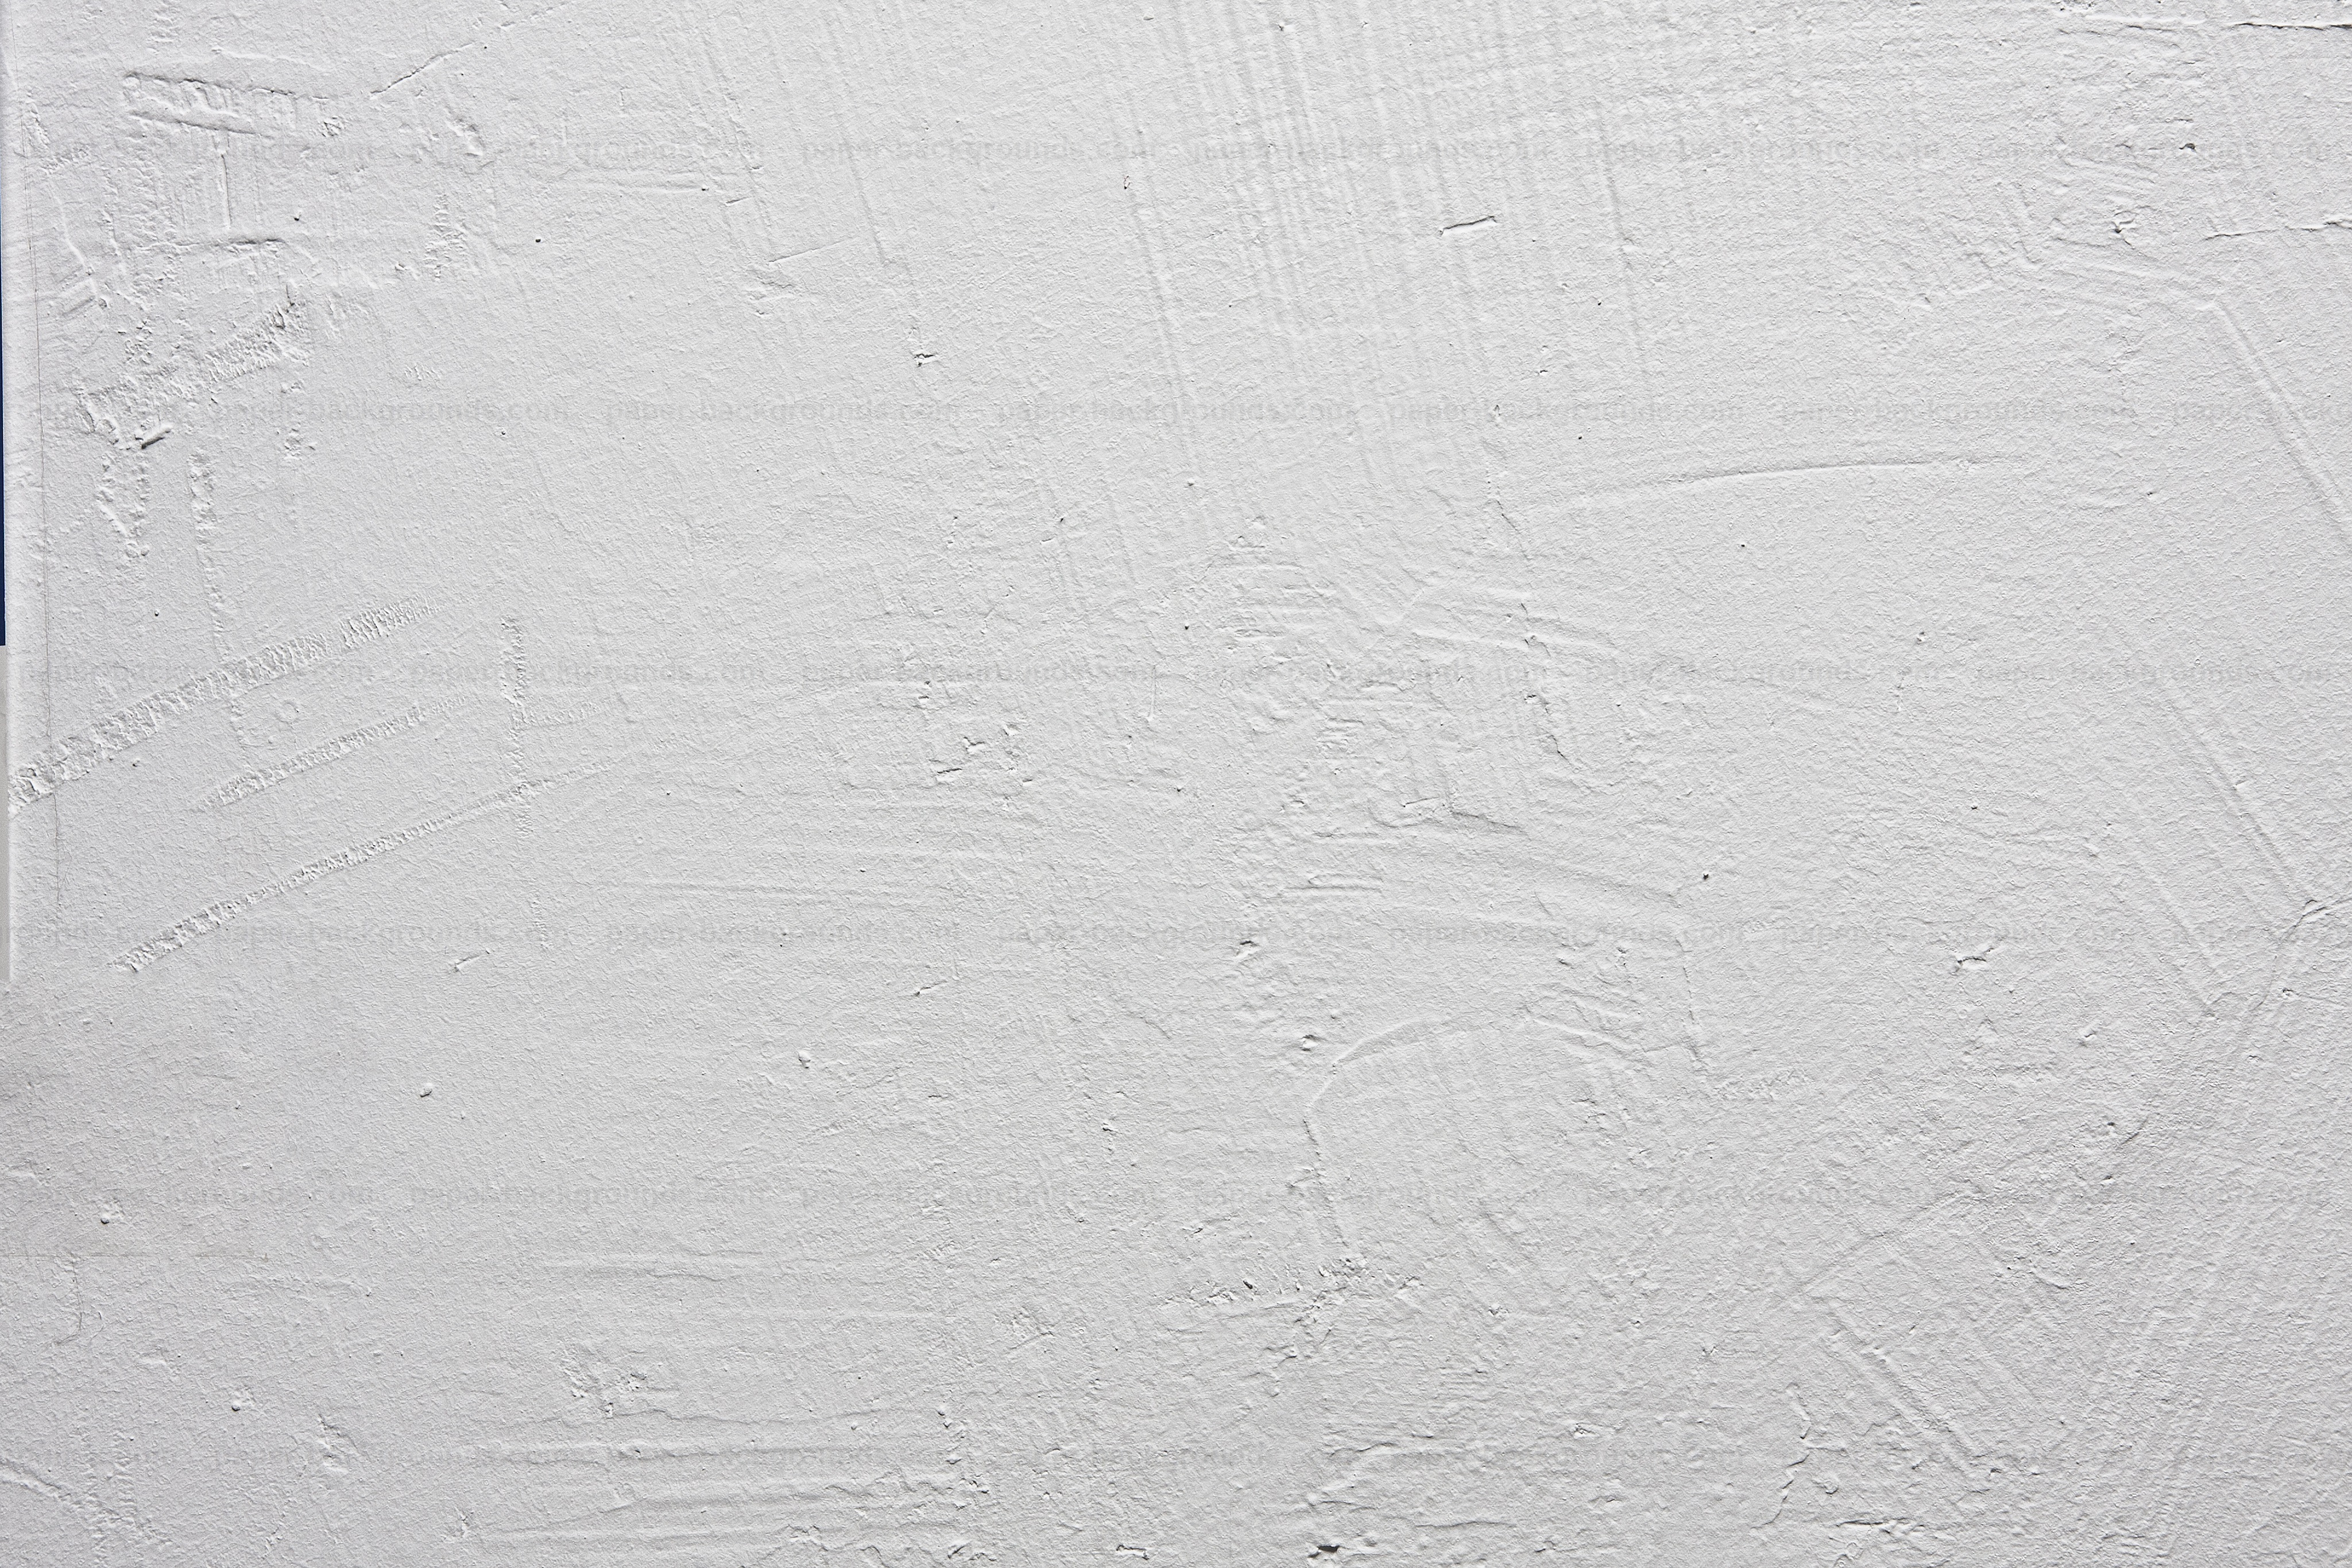 Paper backgrounds stones textures royalty free hd paper - Paper Backgrounds White Concrete Wall Texture Background